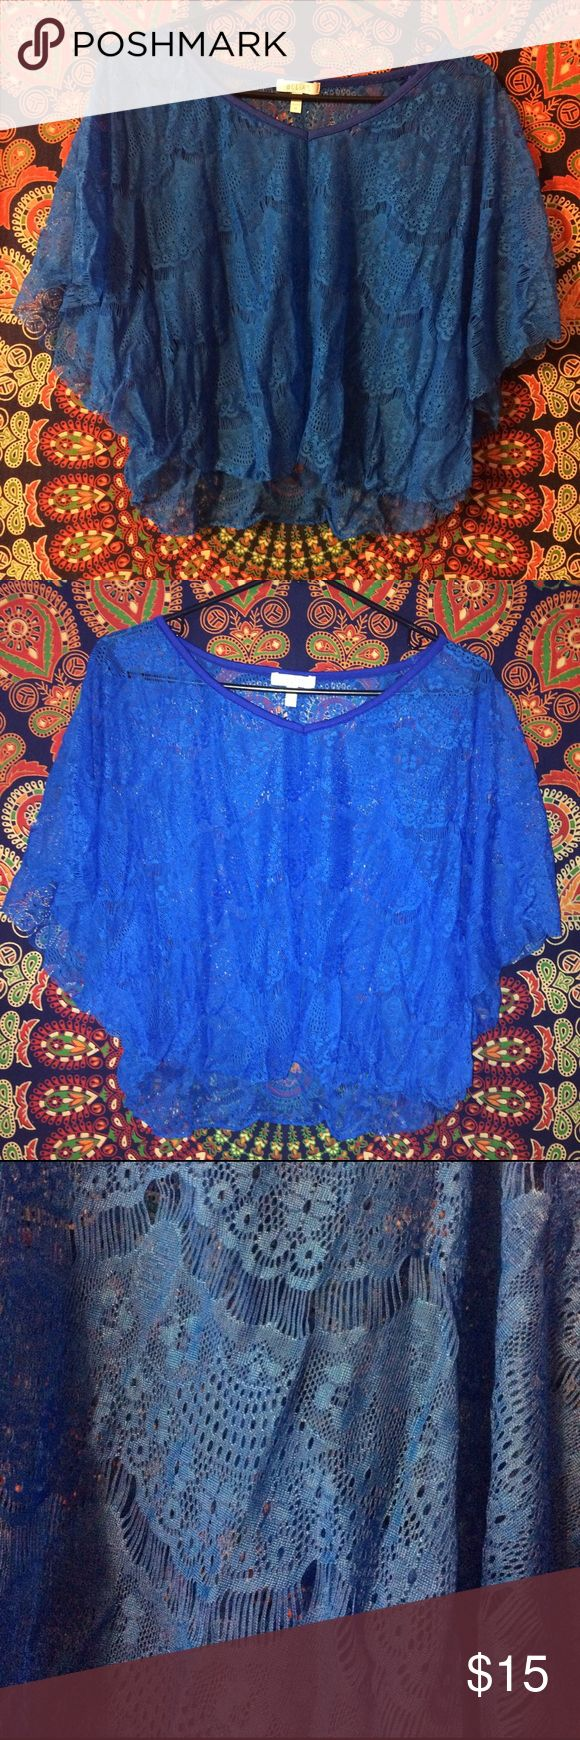 Royal Blue Lace Shirt Royal blue lace shirt from delias. See-through so great to wear with a tank top or cute Bandeau. Great for upcoming spring and summer. Would look awesome with high-waisted jeans or shorts. Delias Tops Blouses